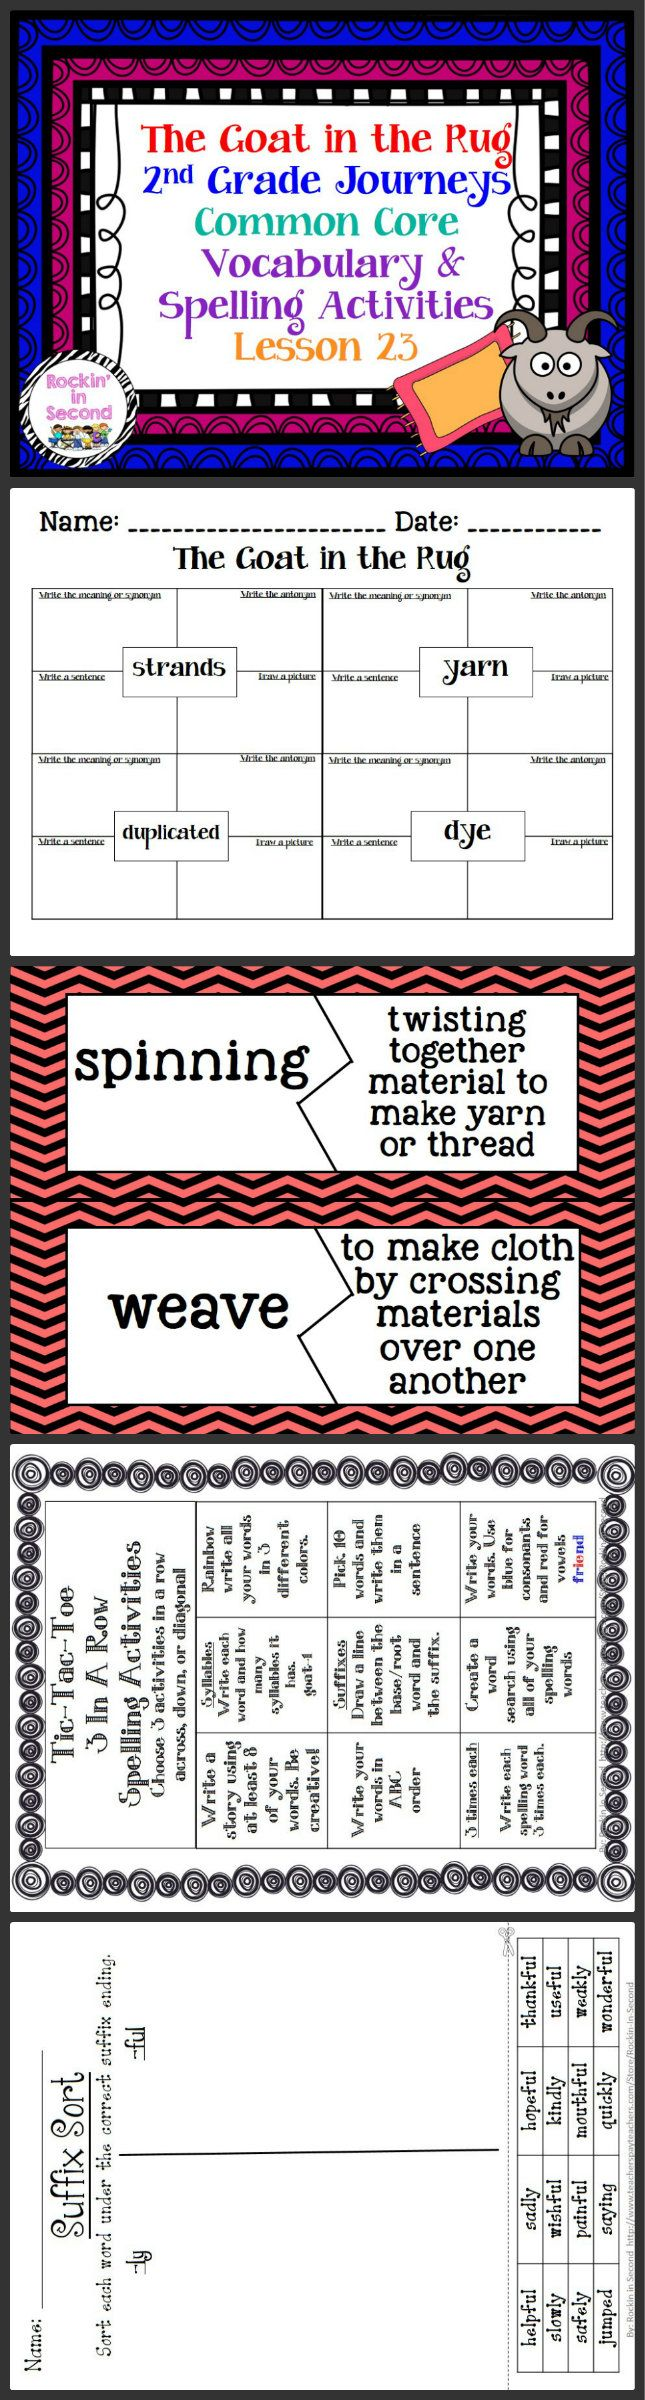 Journeys The Goat in the Rug Lesson 23 Spelling & Vocab. Activities  In this bundle you will receive Vocabulary Puzzles, Vocabulary 4 square sheets, Spelling lists for student's agendas, Tic-Tac-Toe spelling activity, Spelling Sort, and Rainbow Write spelling paper.  These all are aligned with Common Core and goes along with Journeys.